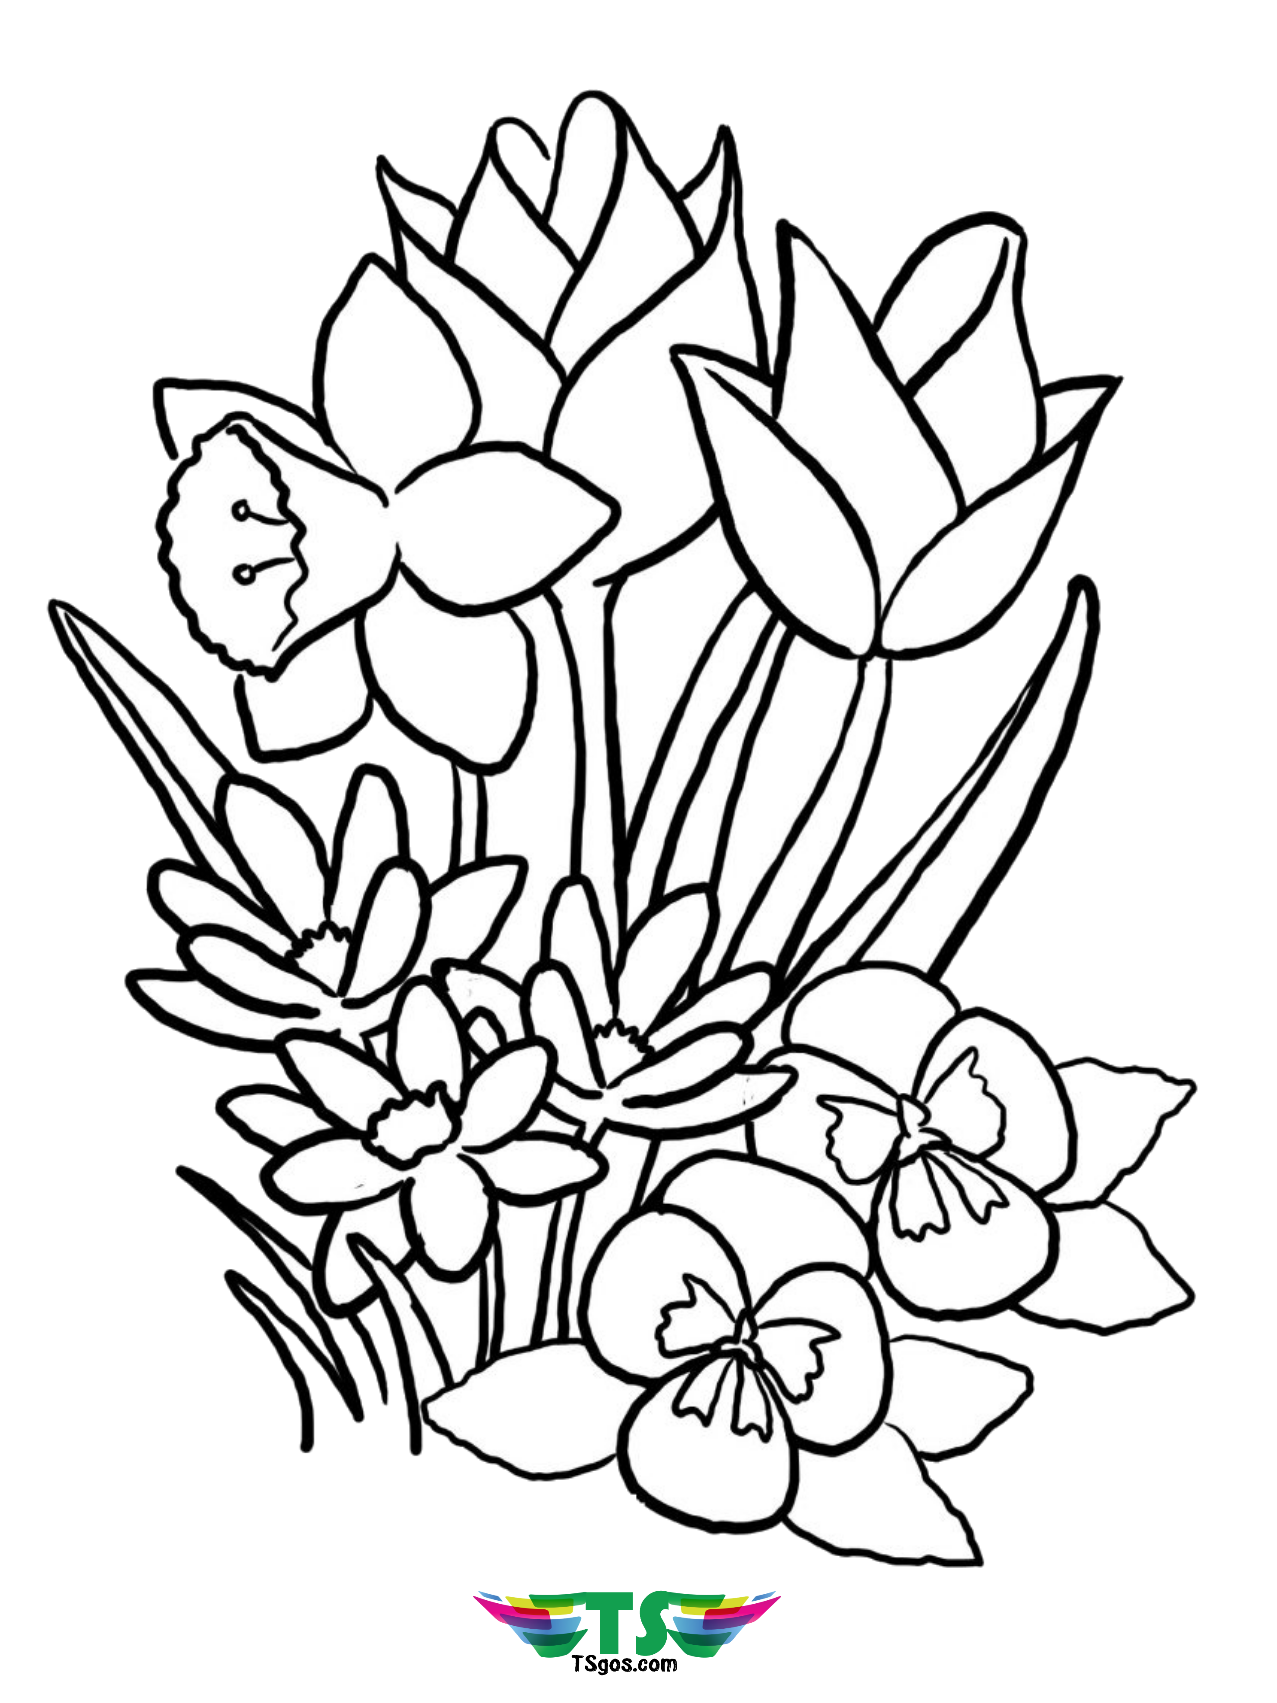 pictures of flowers to color 10 flower coloring sheets for girls and boys all esl of color pictures to flowers